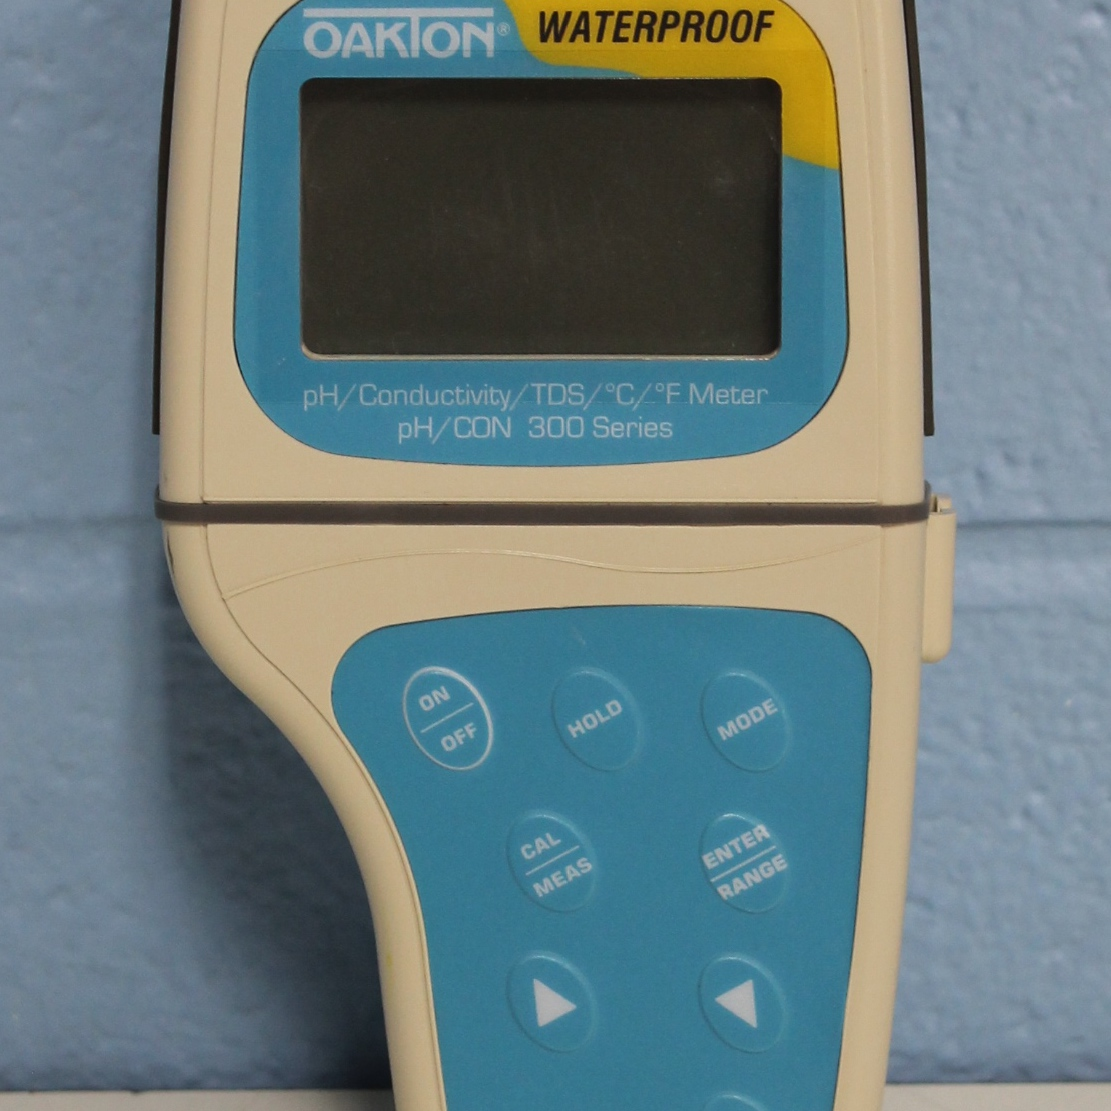 Oakton Waterproof pH/DO 300  pH/Conductivity/TDS/C/F Meter Image